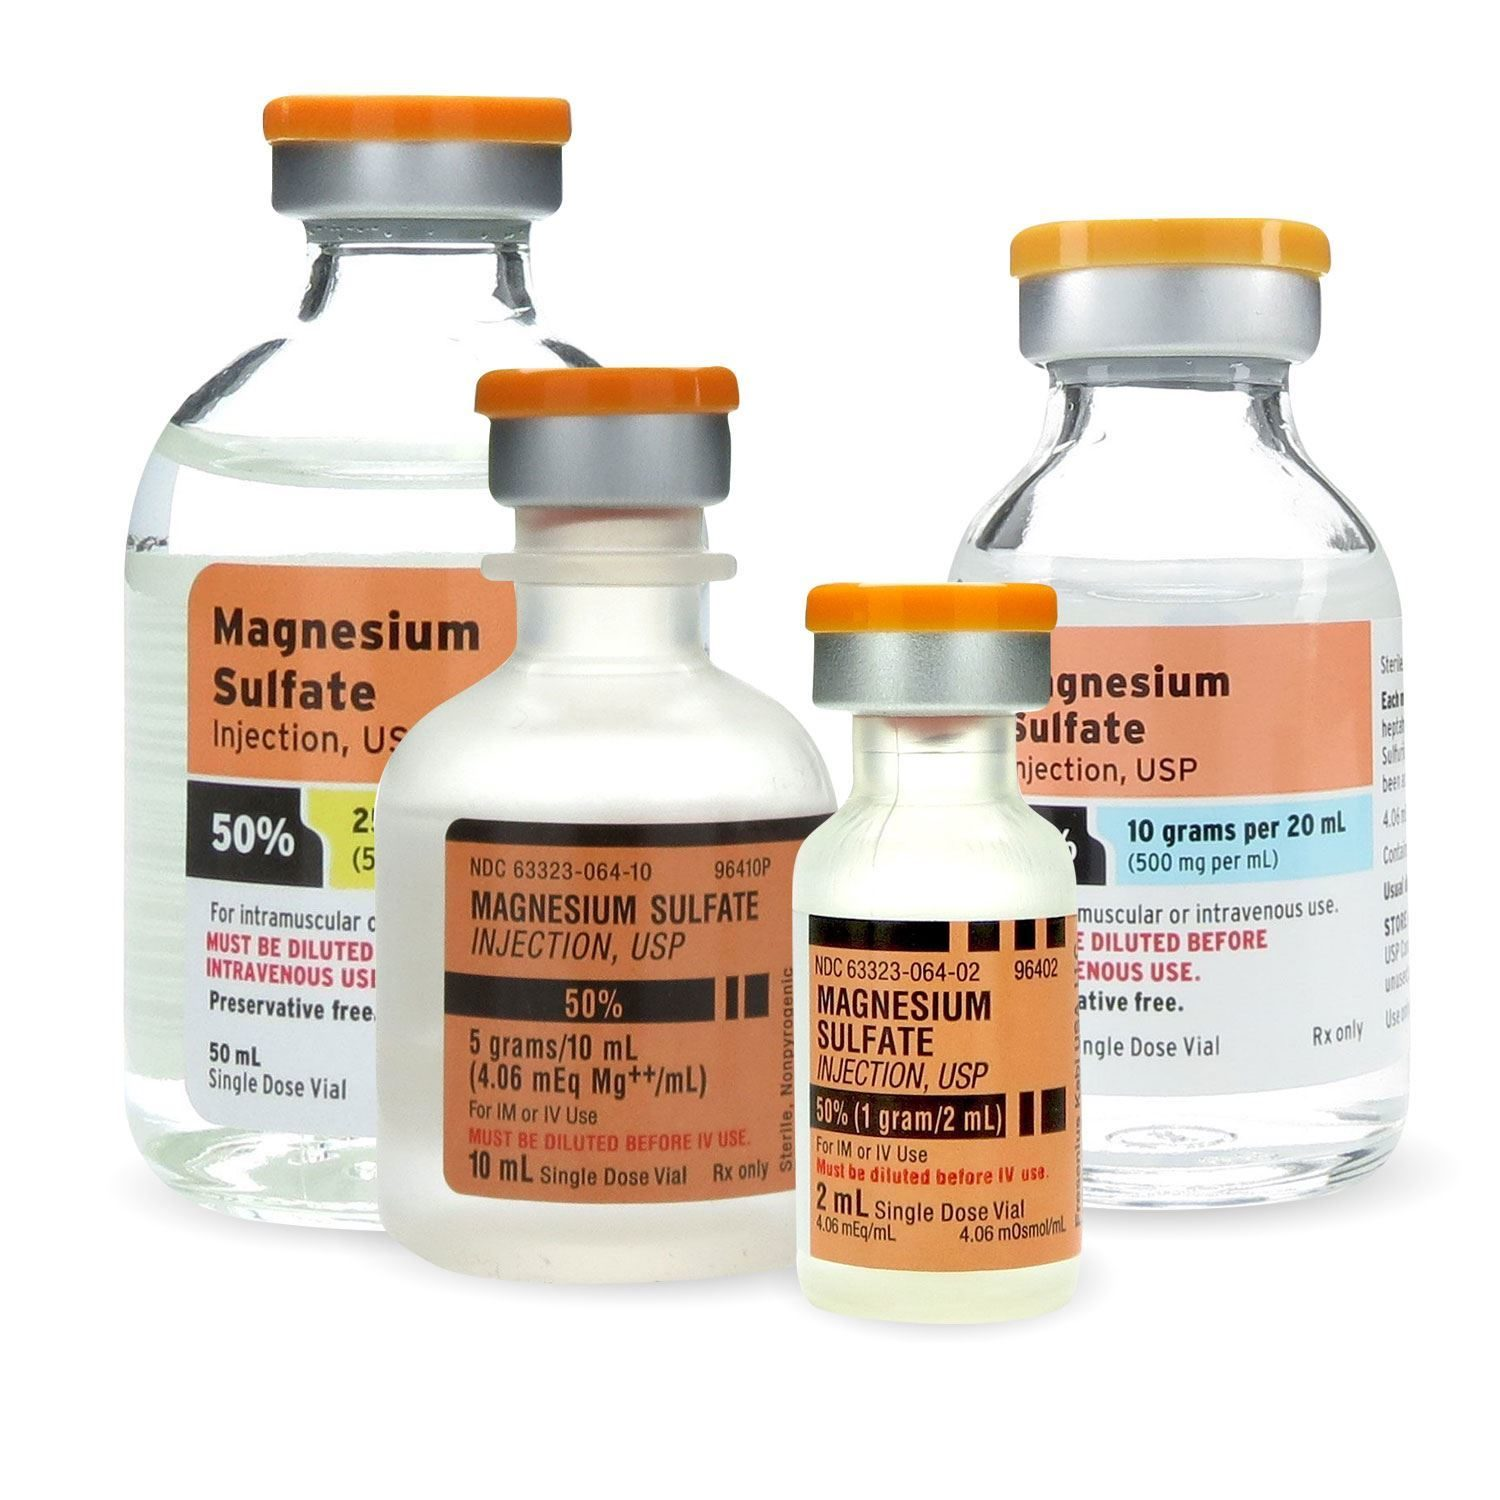 Magnesium Sulfate 50% 500mg/mL SDV   McGuff Medical Products